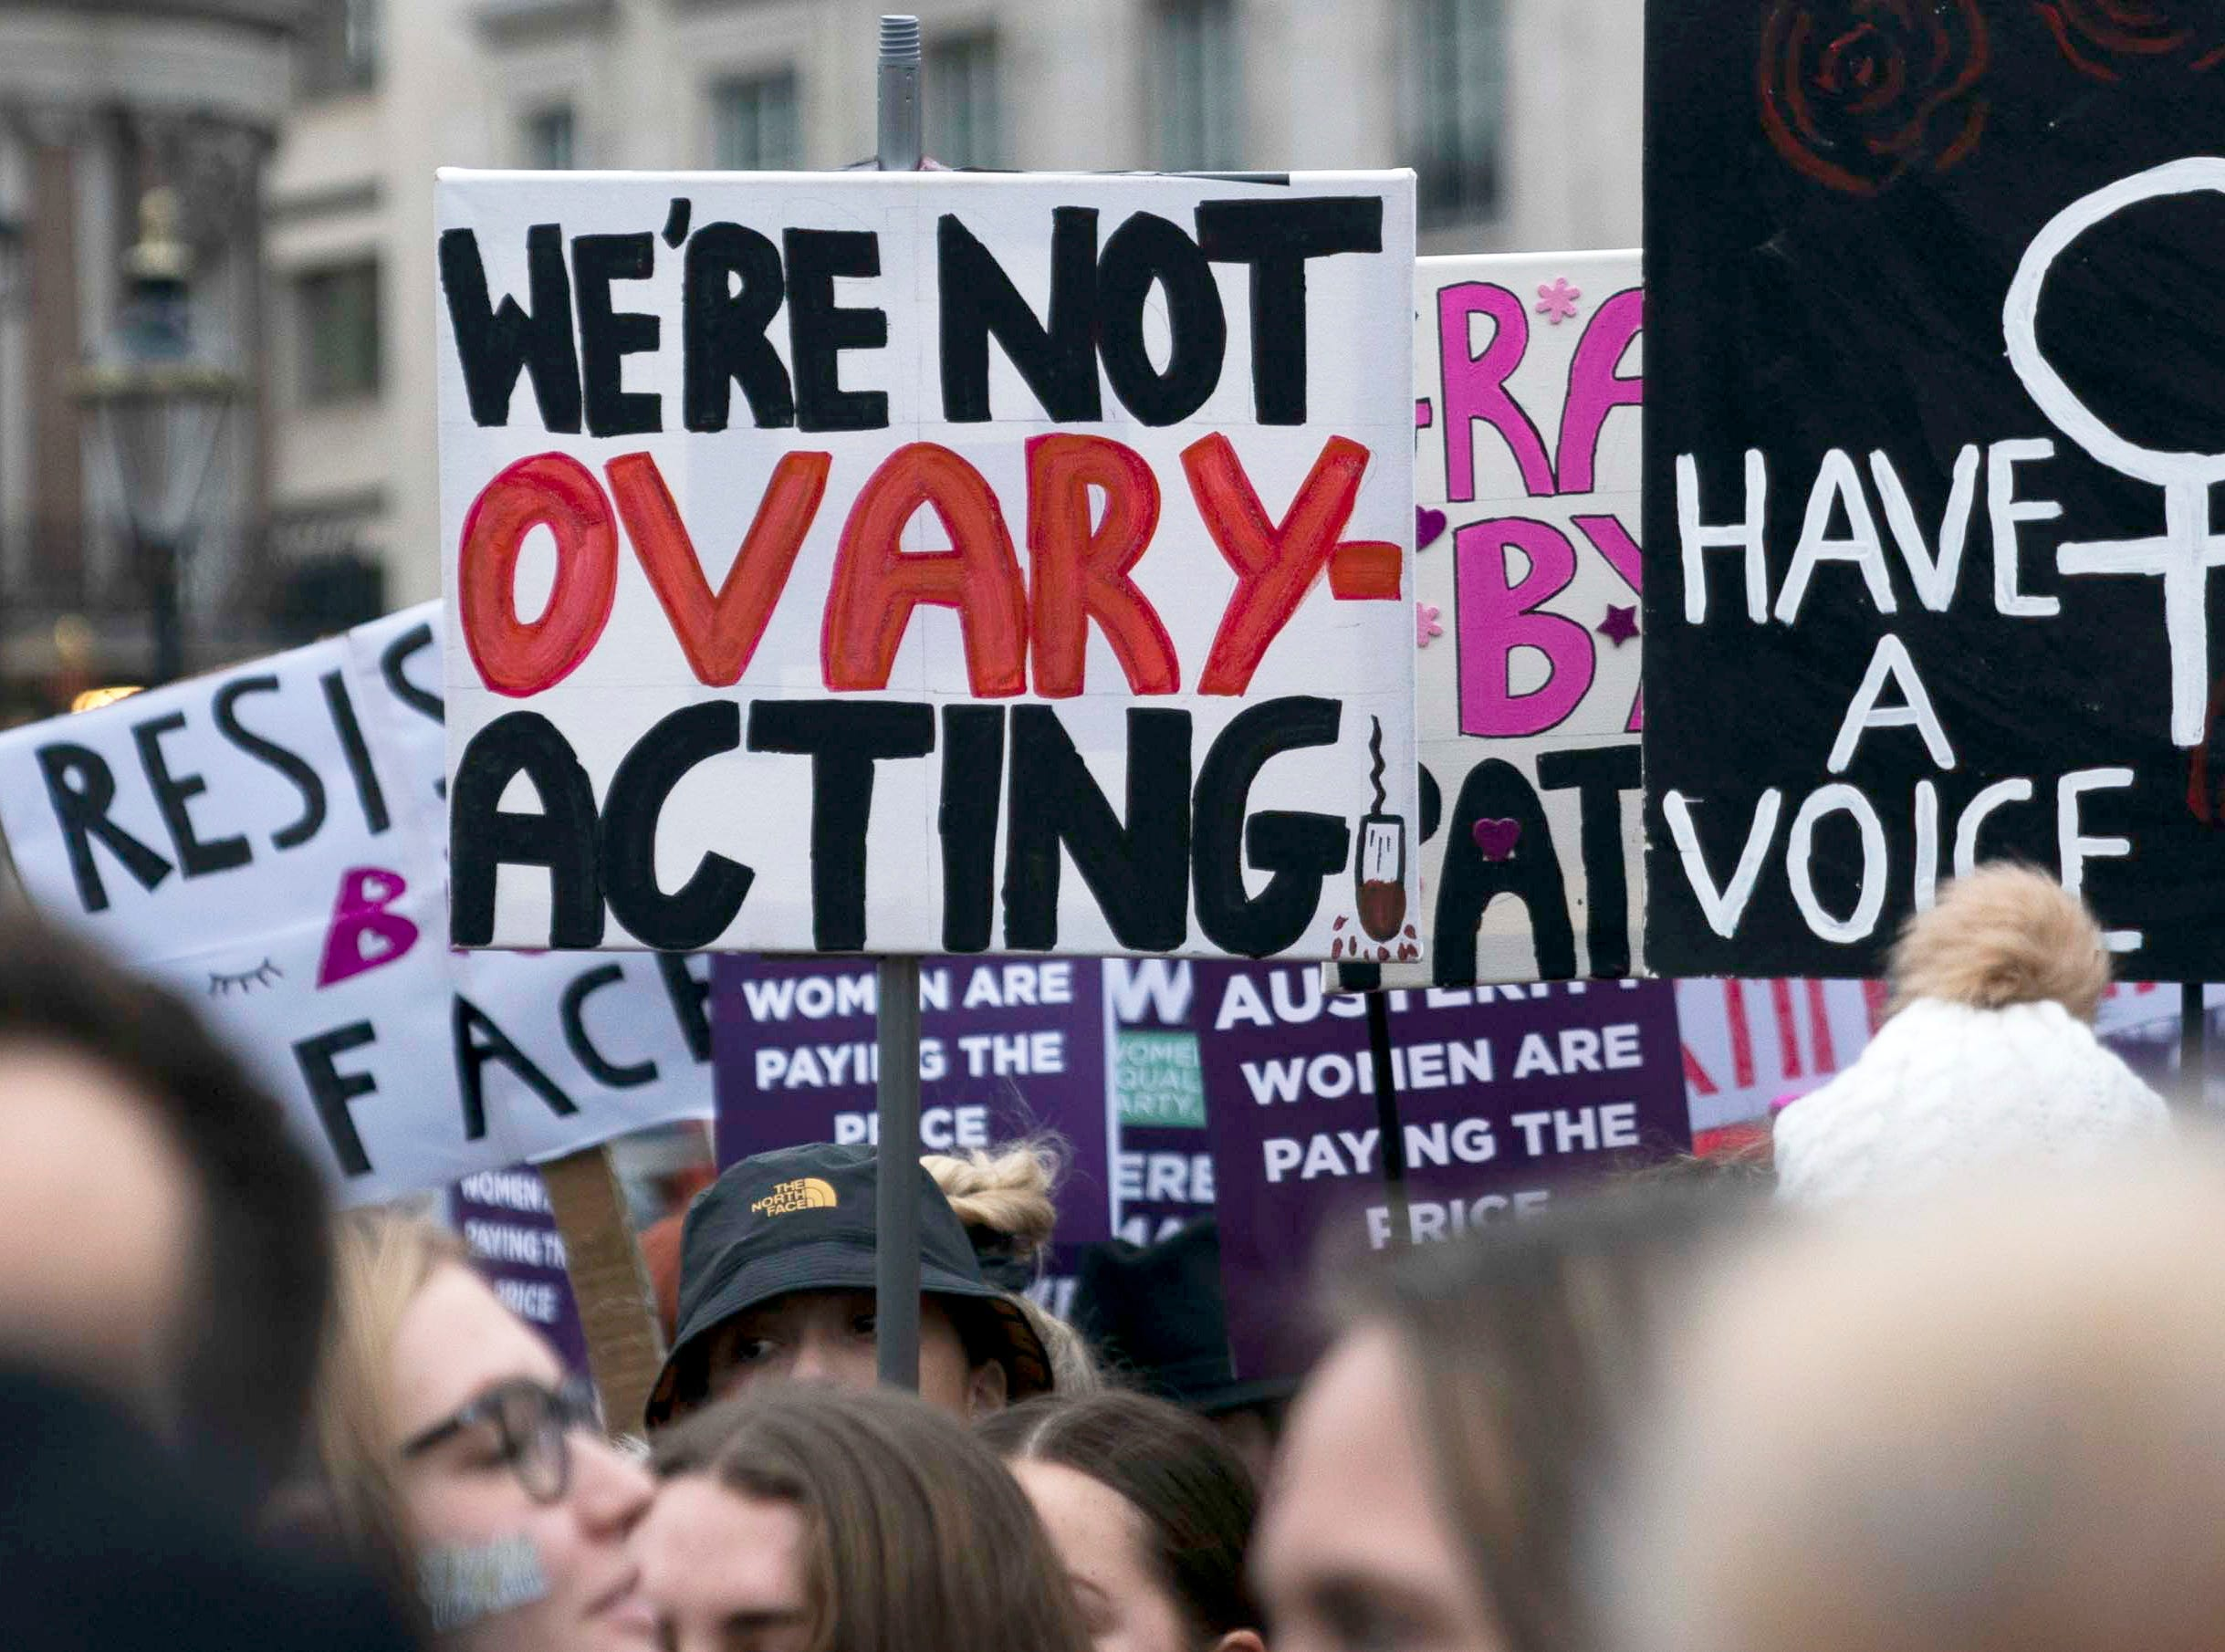 Protesters with placards 'We're not ovary-acting' and 'have a voice' take part in the 2019 Women's March in Central London, Britain on Jan. 19, 2019. Thousands of protesters called for greater protection and rights for women and end of austerity in Britain.